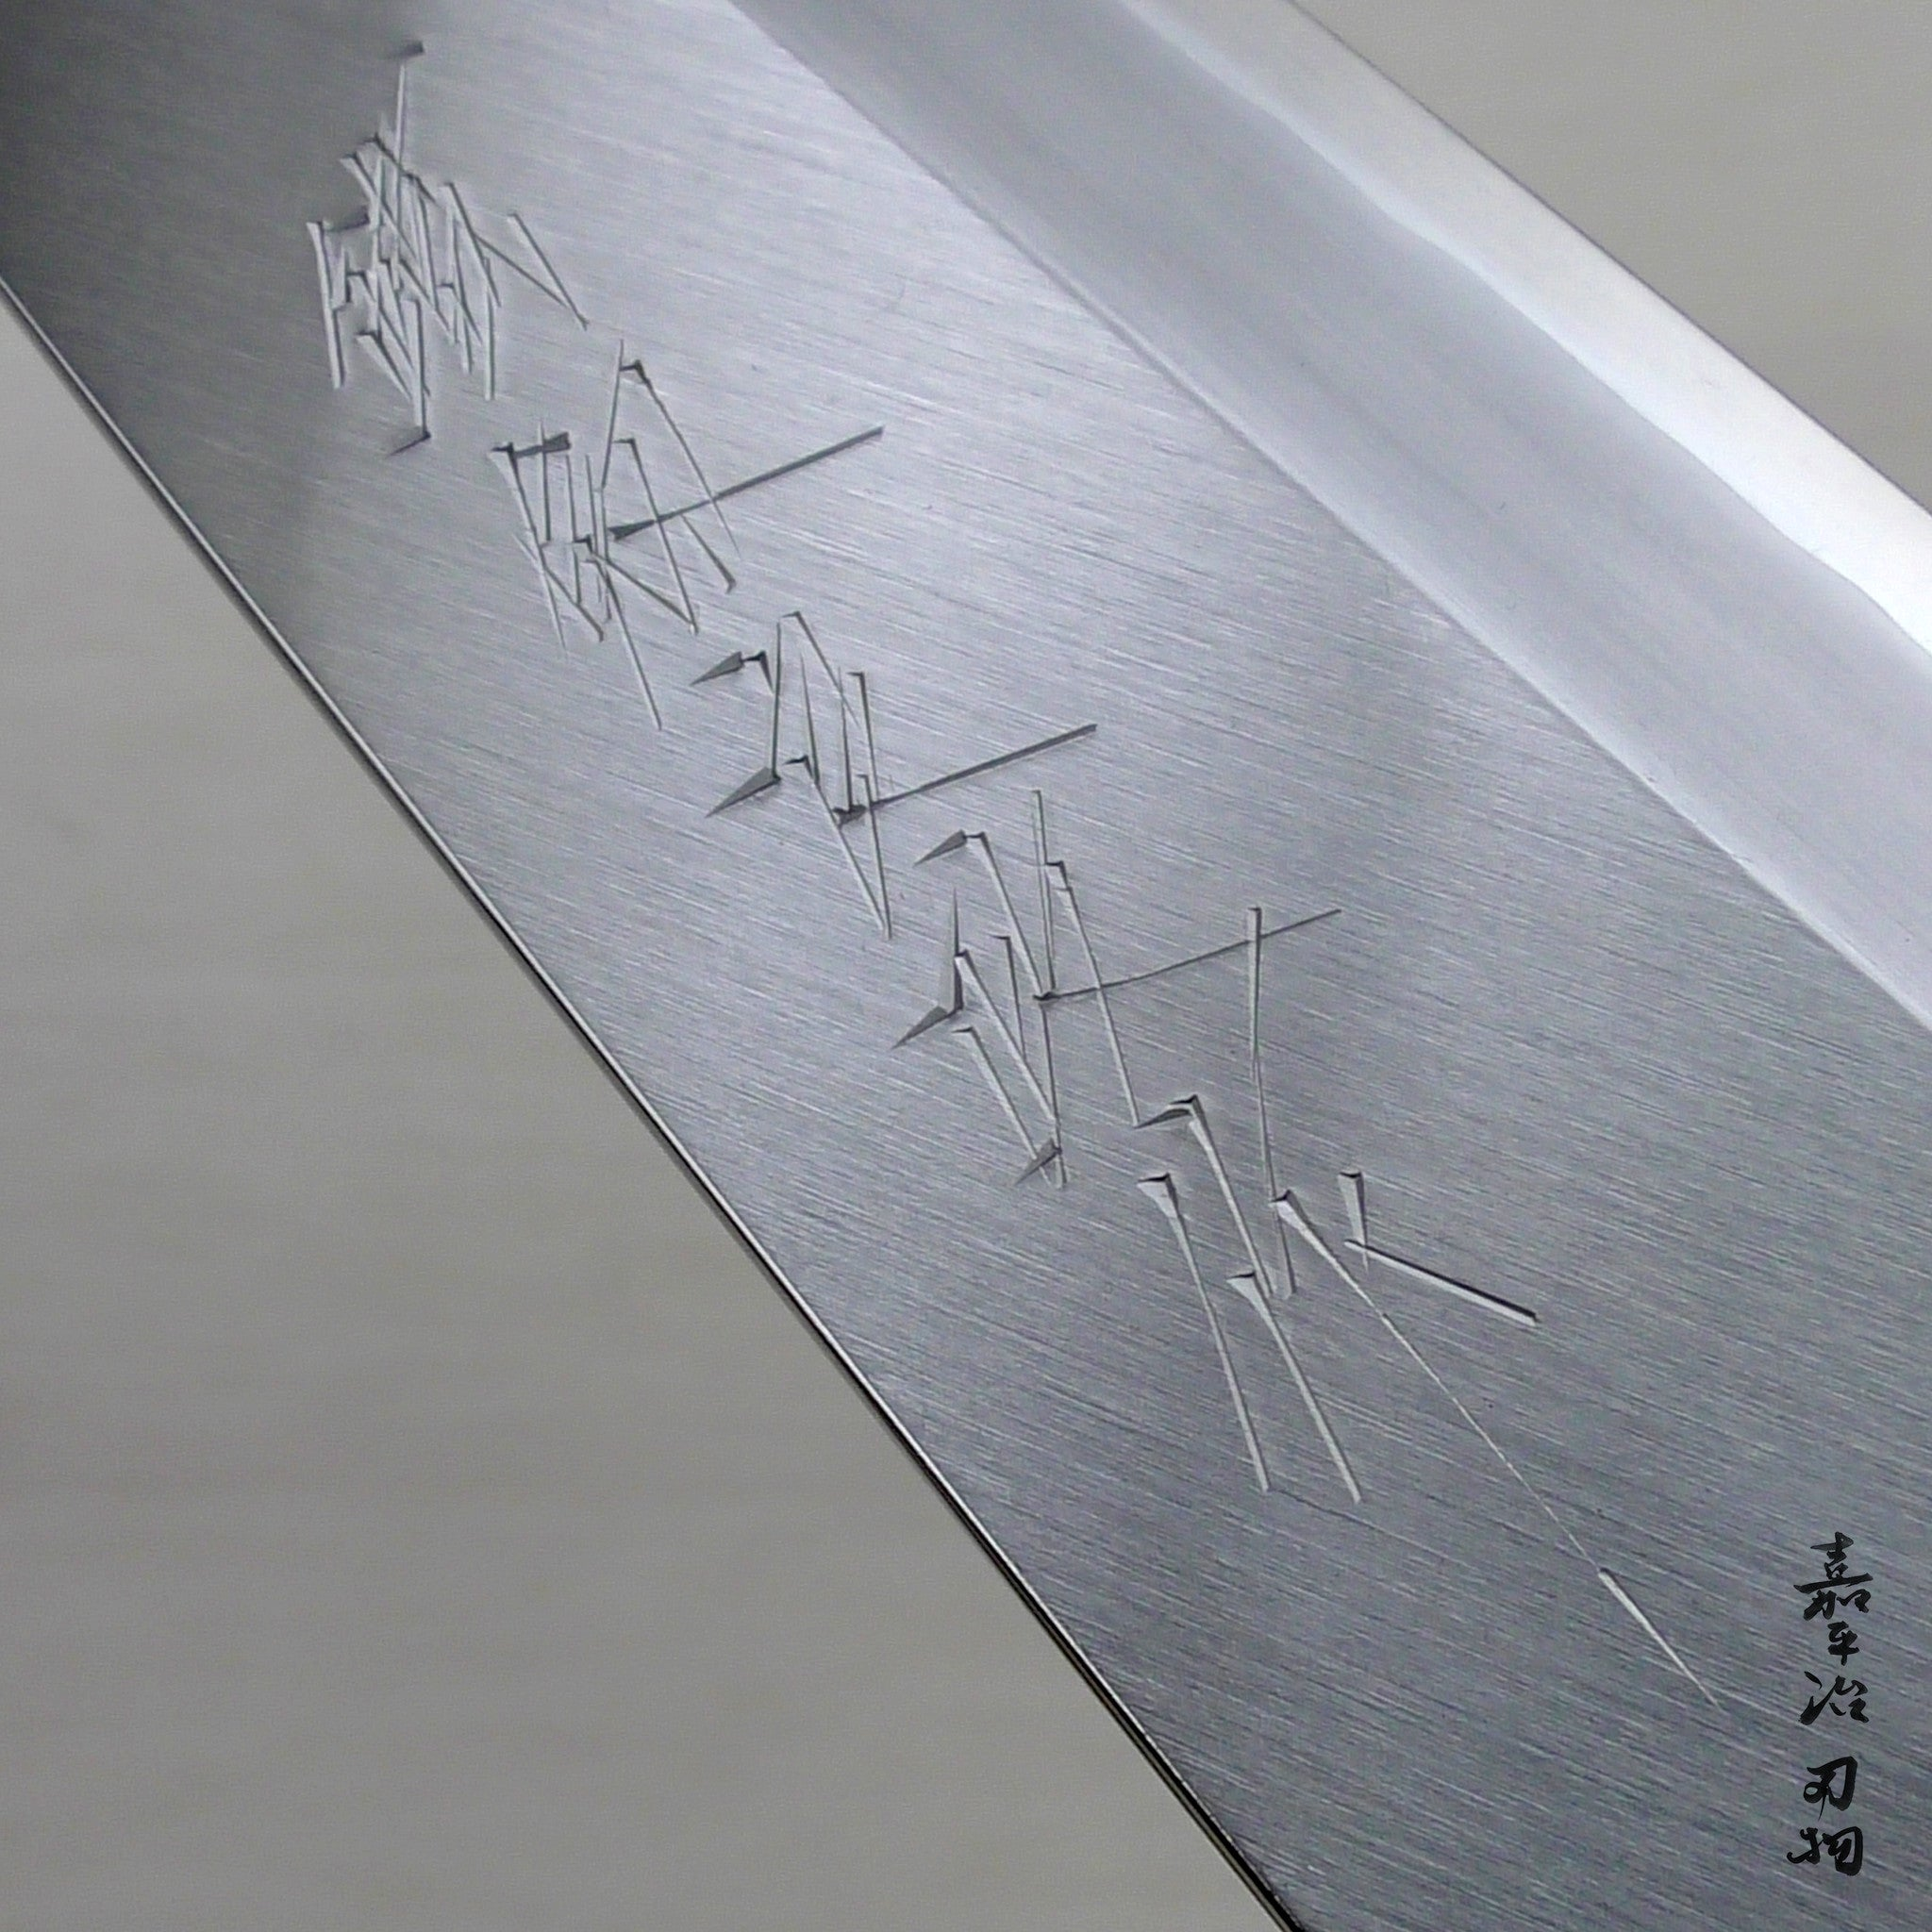 Tekken Yoshimasa VG10 HIT Damascus Hammered Usuba Japanese Knife